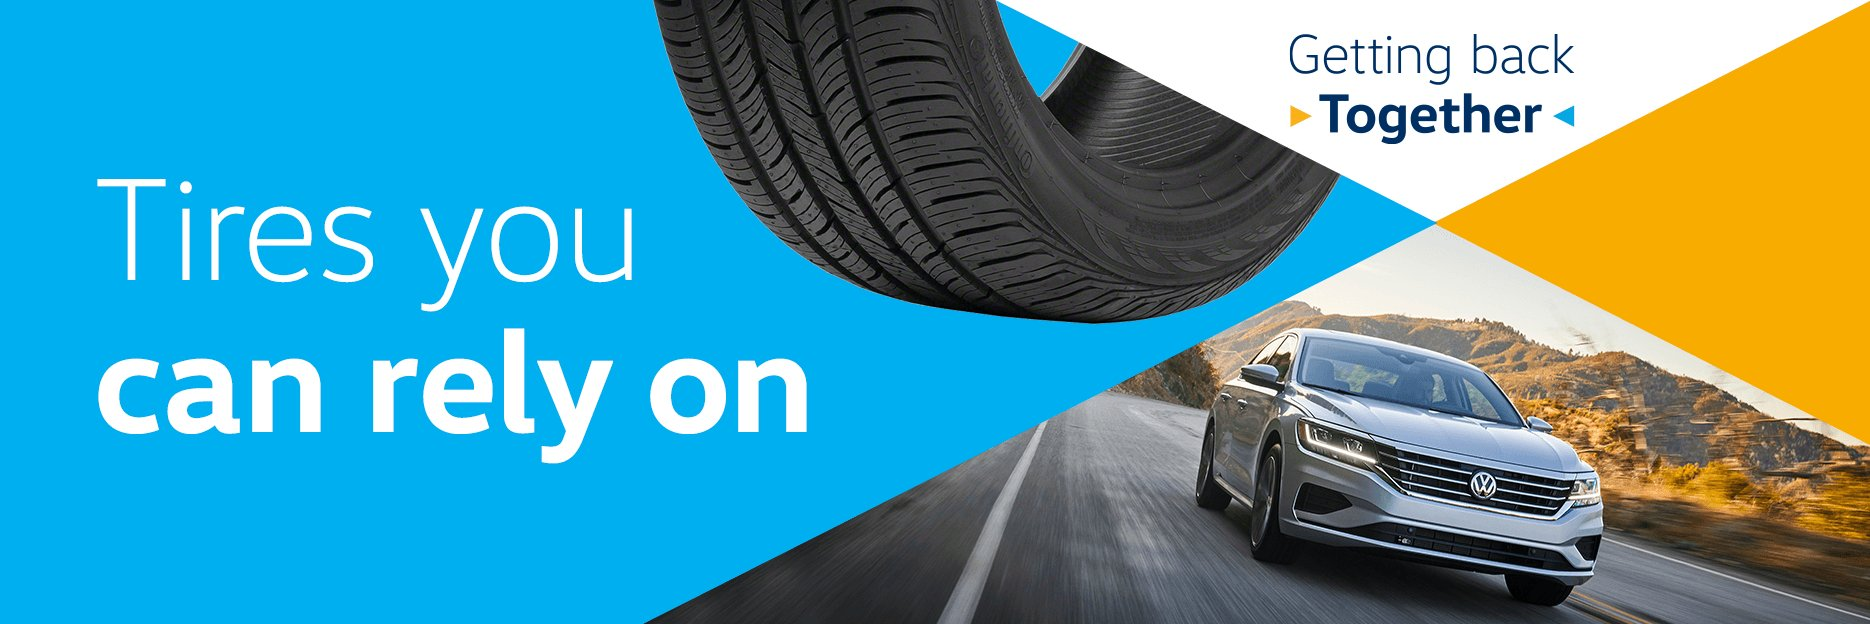 A great deal on Volkswagen Recommended Tires can help give you a fresh start